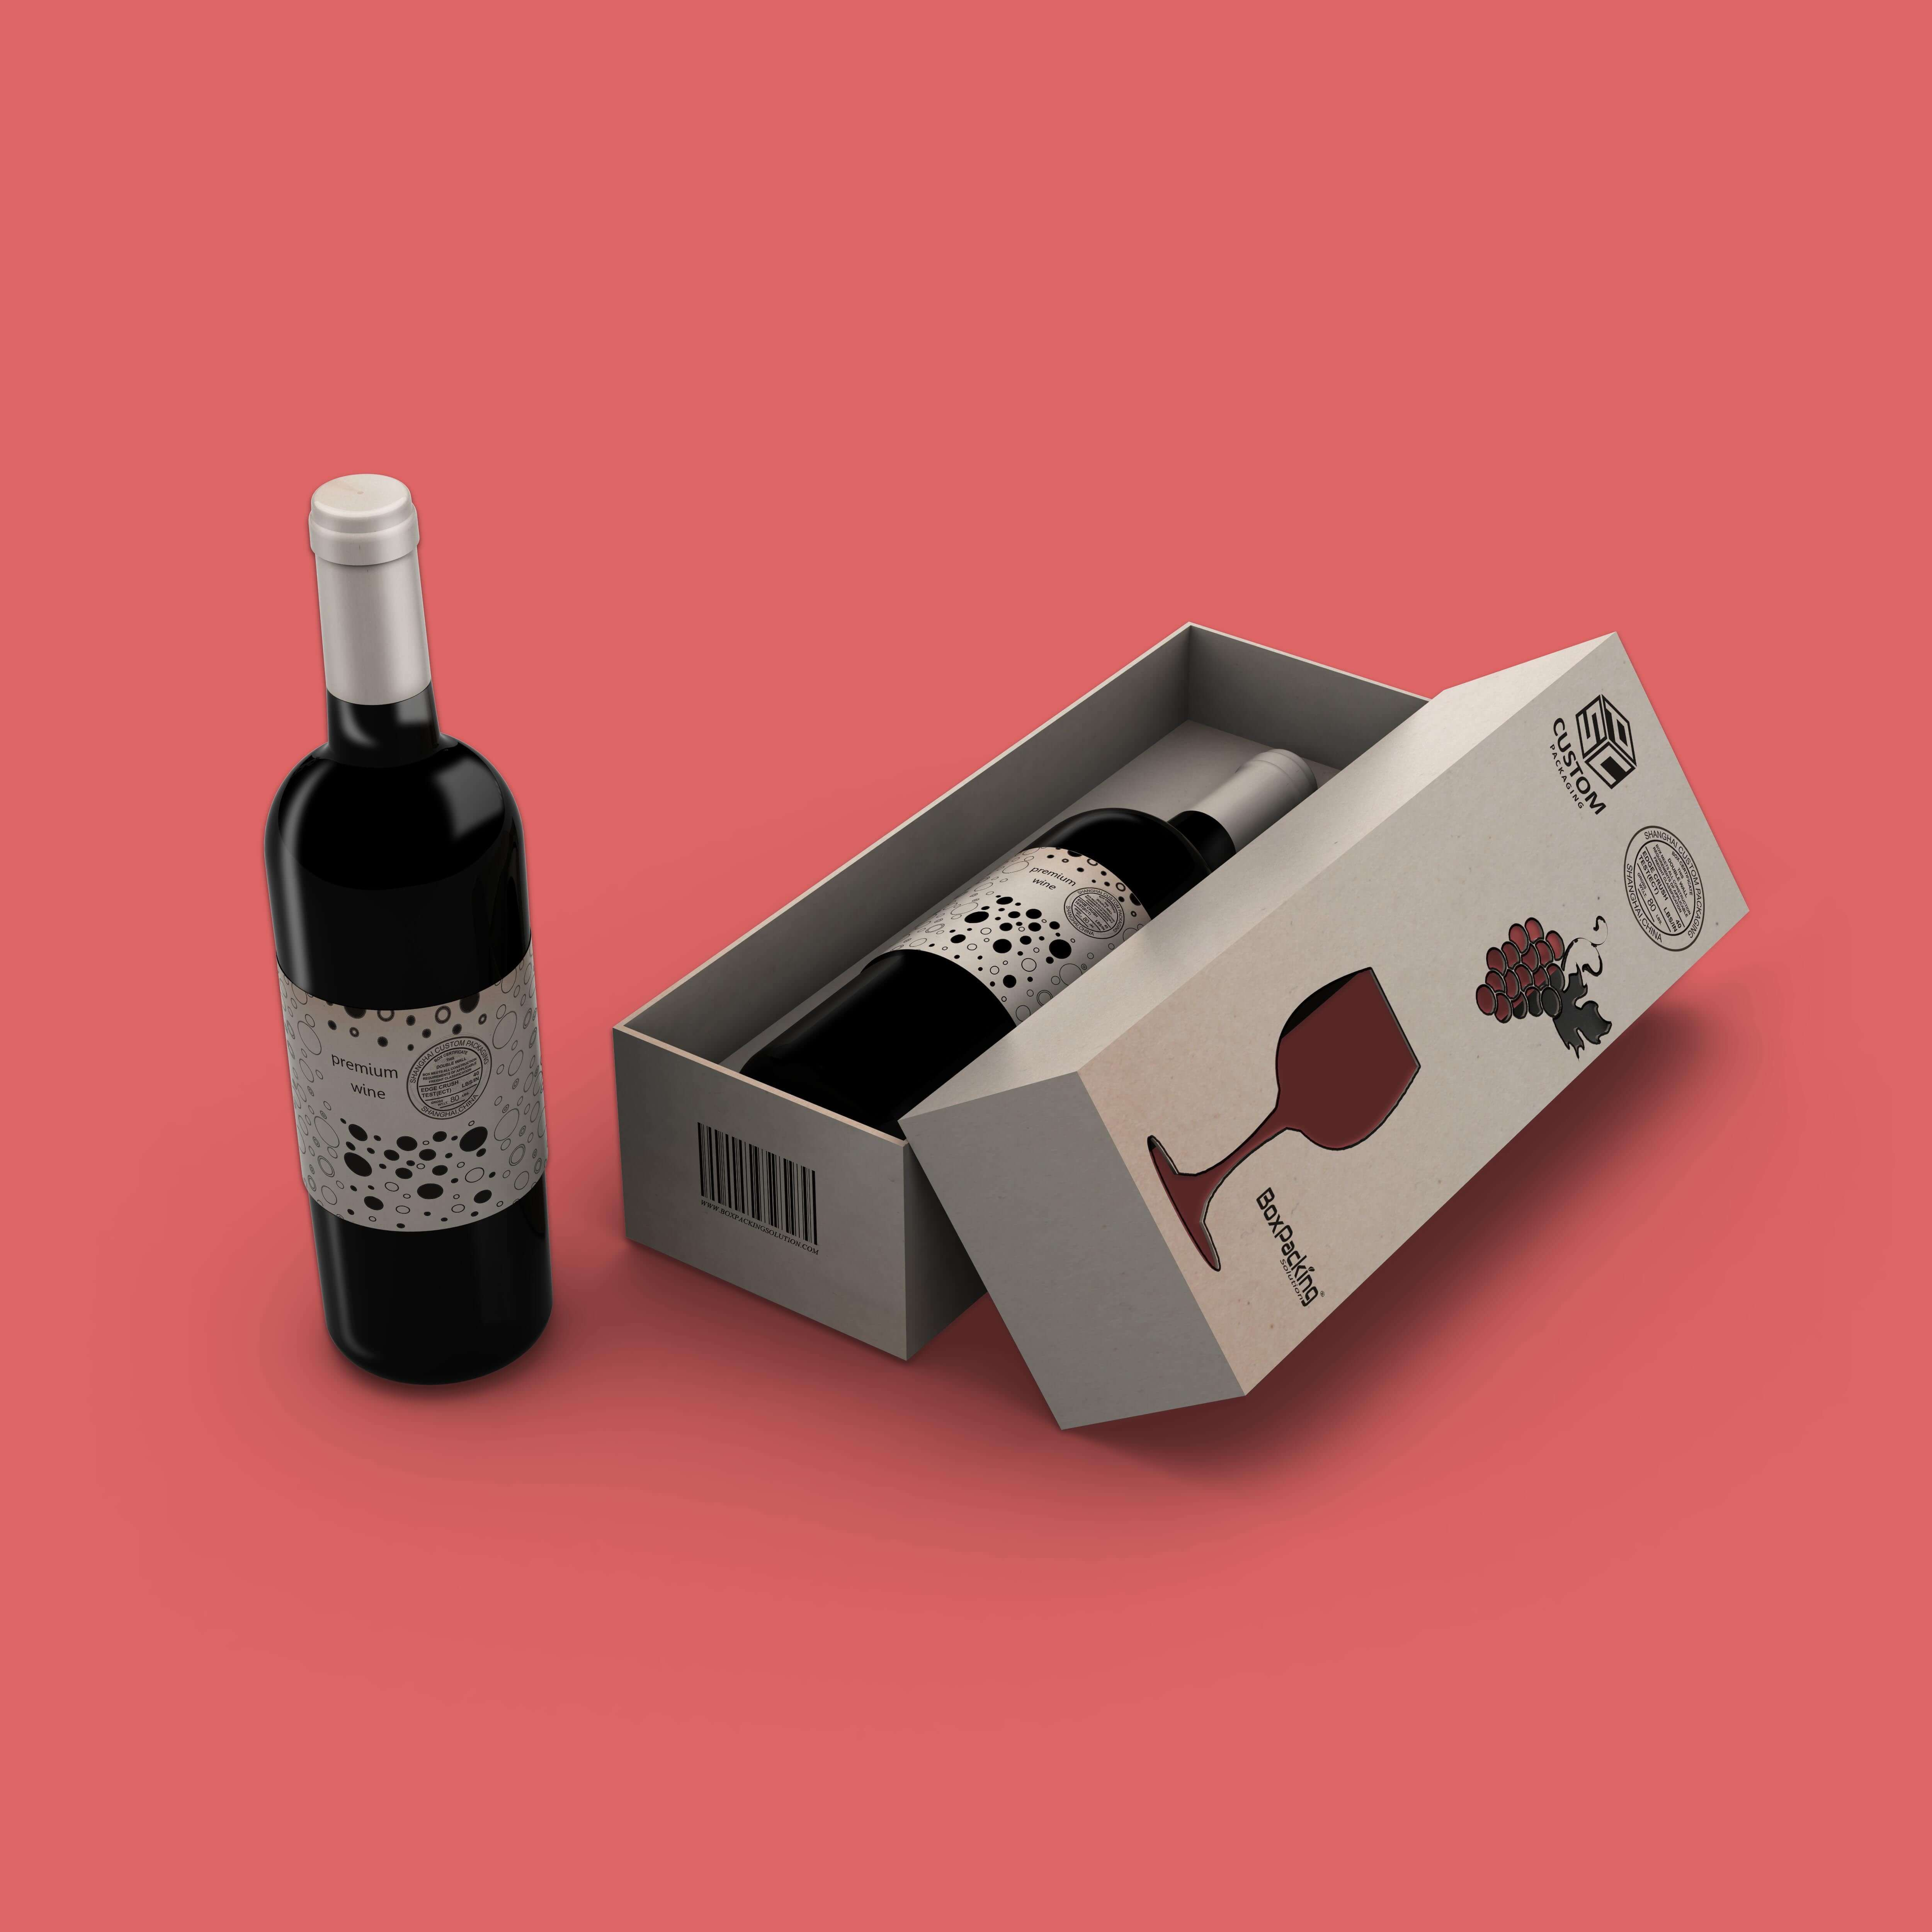 Download The Best Mock Up Services For Packaging Box Product Mock Up Services Wine Bag Mocking Wine Box